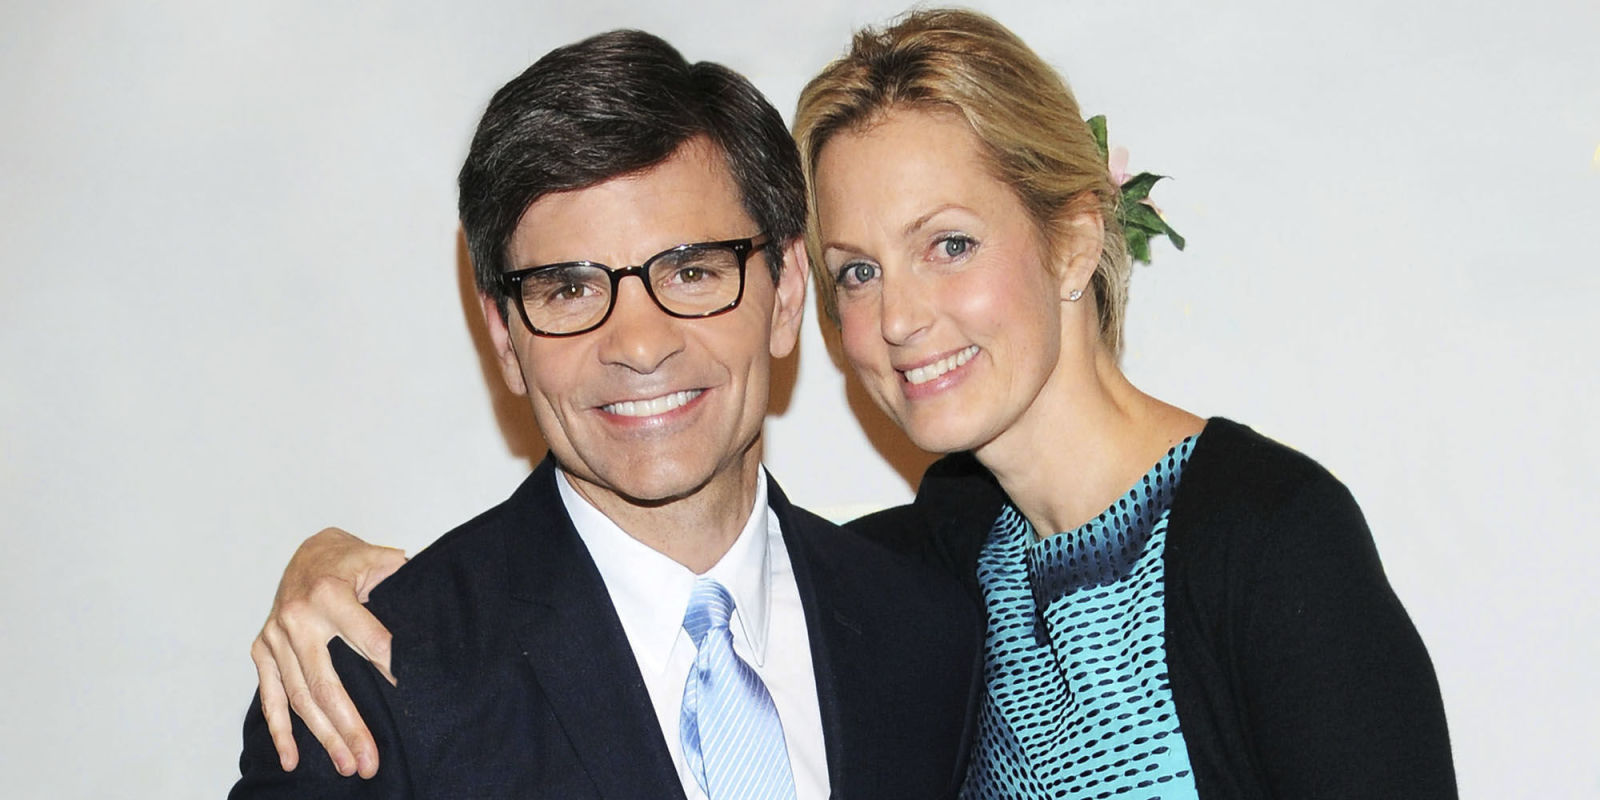 Ali wentworth talks new book inspiration from lena dunham and husband